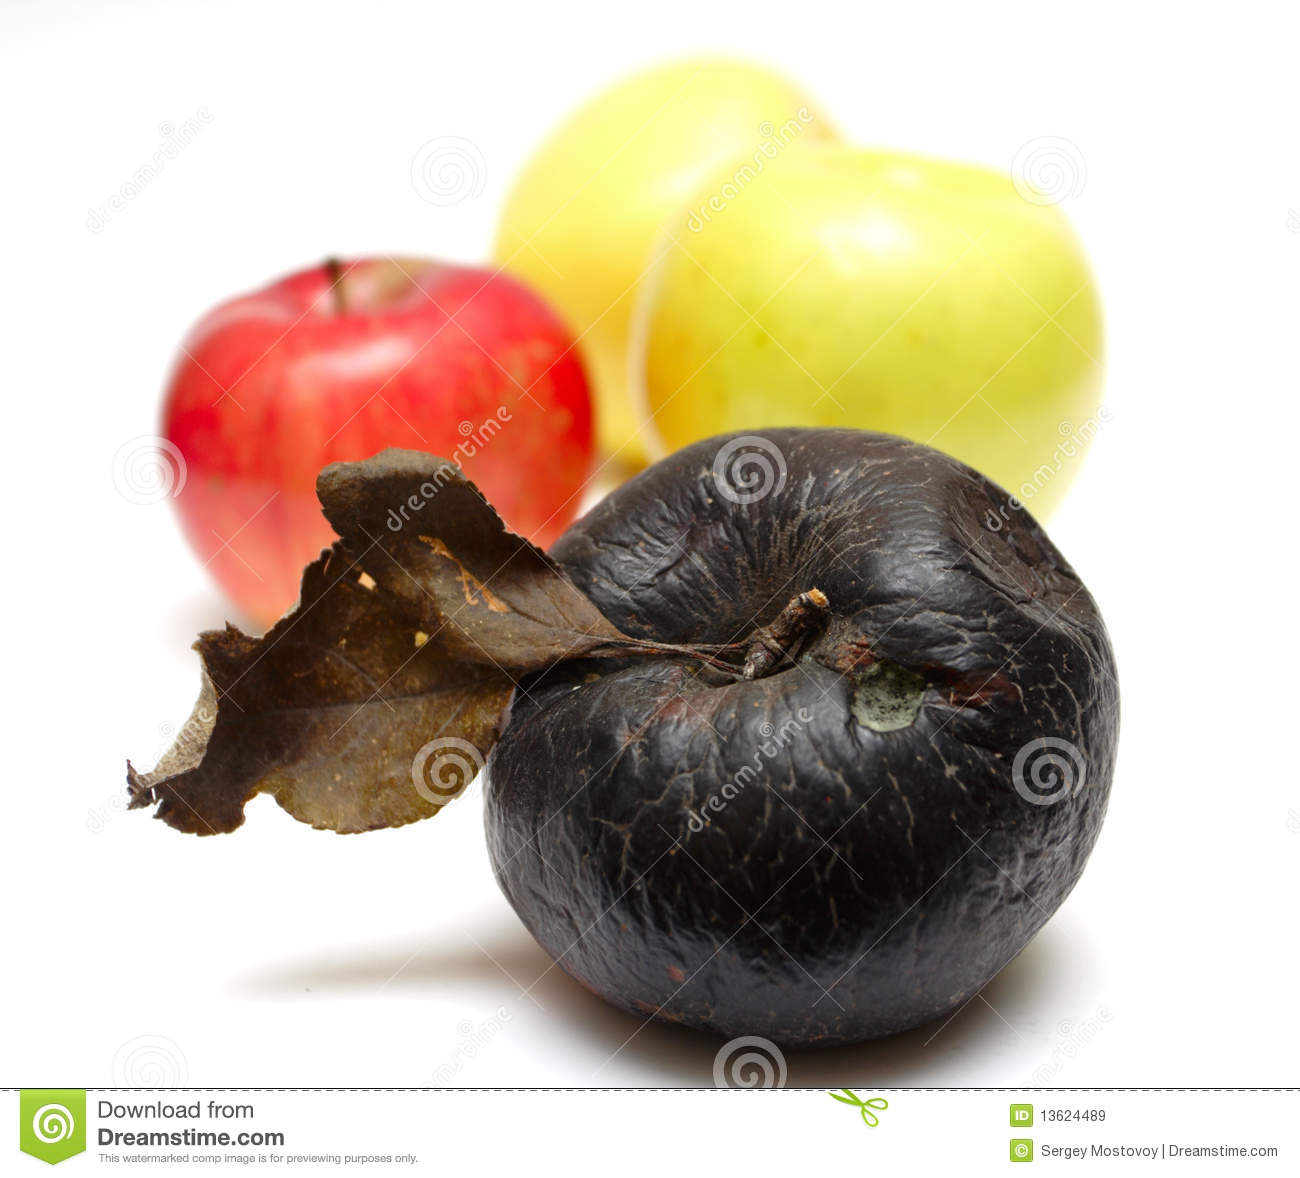 Rotten apple at the row of fresh apples